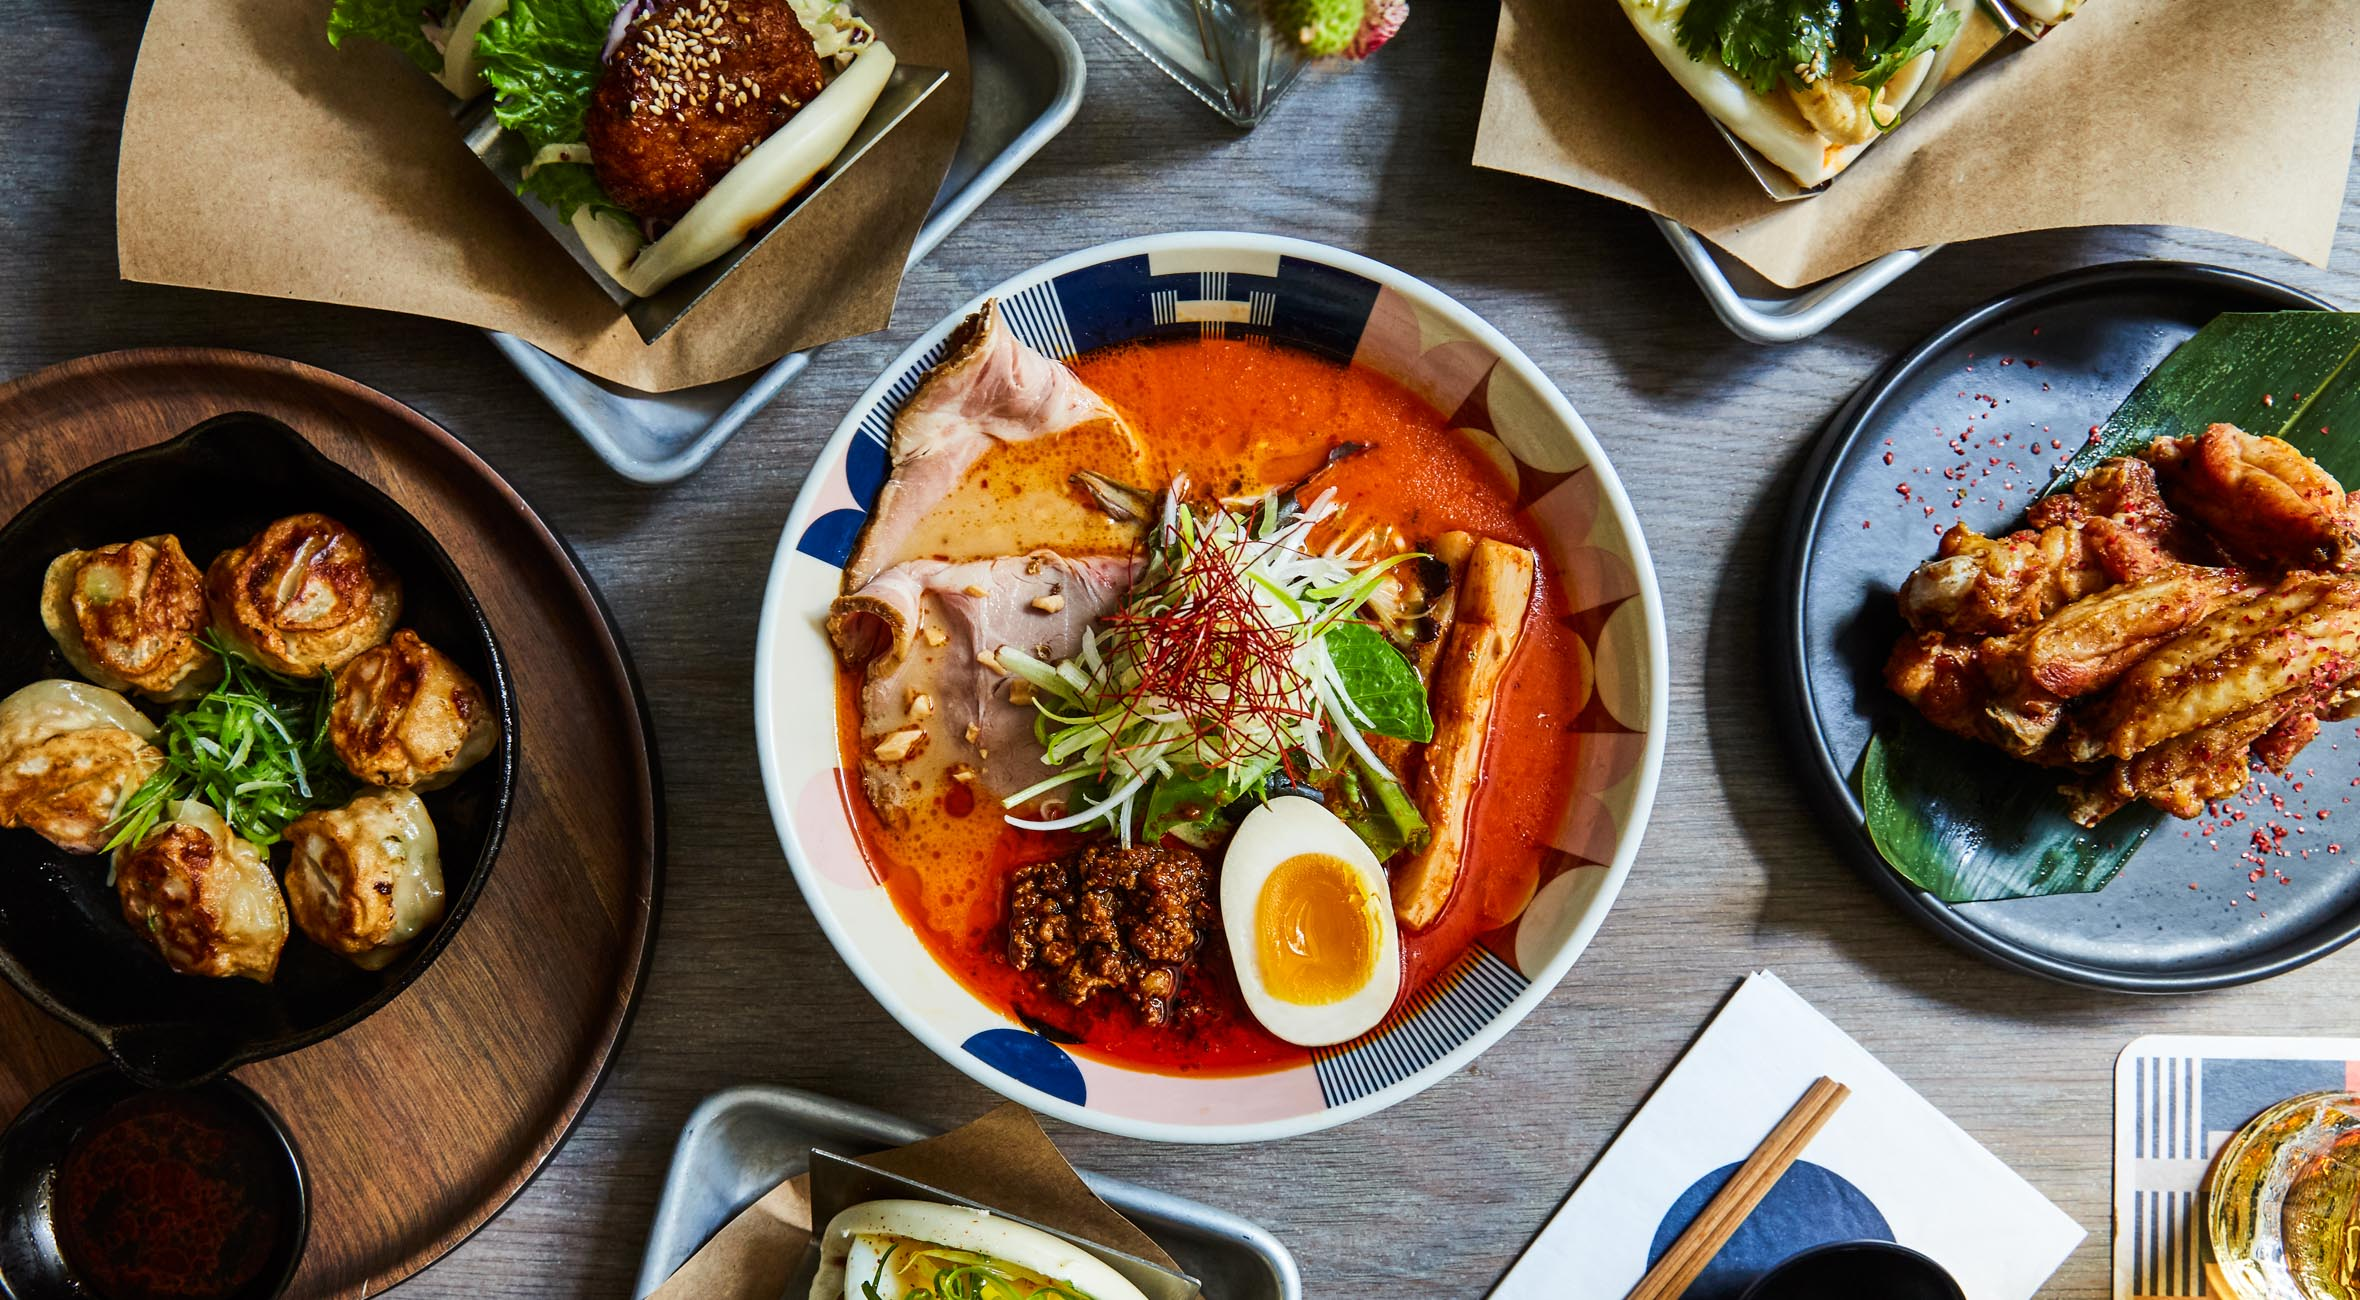 Two-Course Menu at Tonchin – One of Last Year's Most Anticipated Restaurant Openings